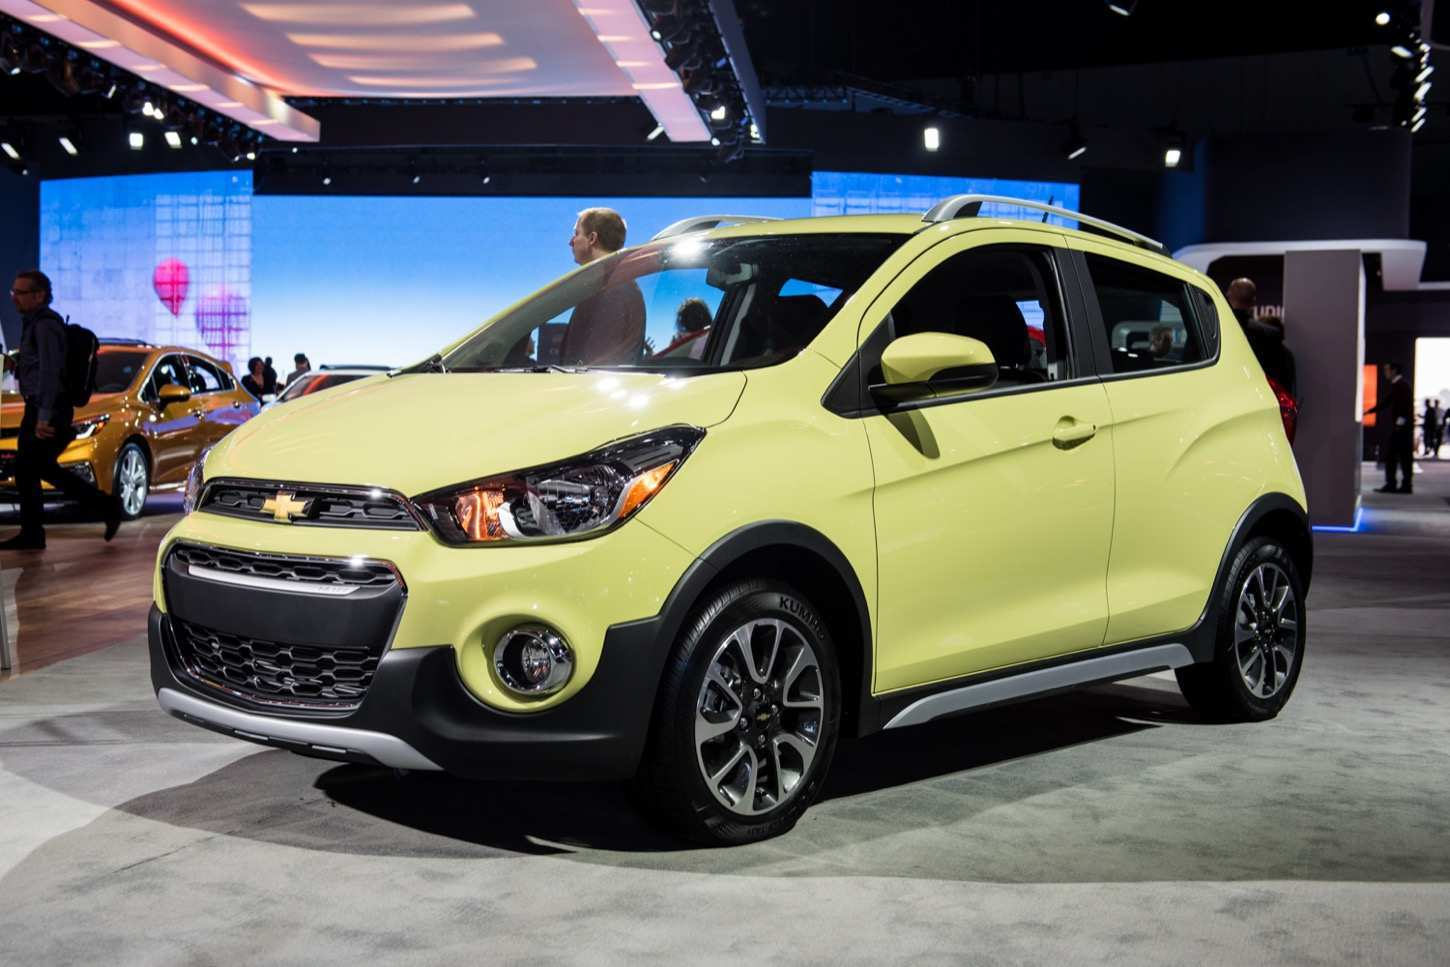 34 Gallery of 2019 Chevrolet Spark First Drive for 2019 Chevrolet Spark